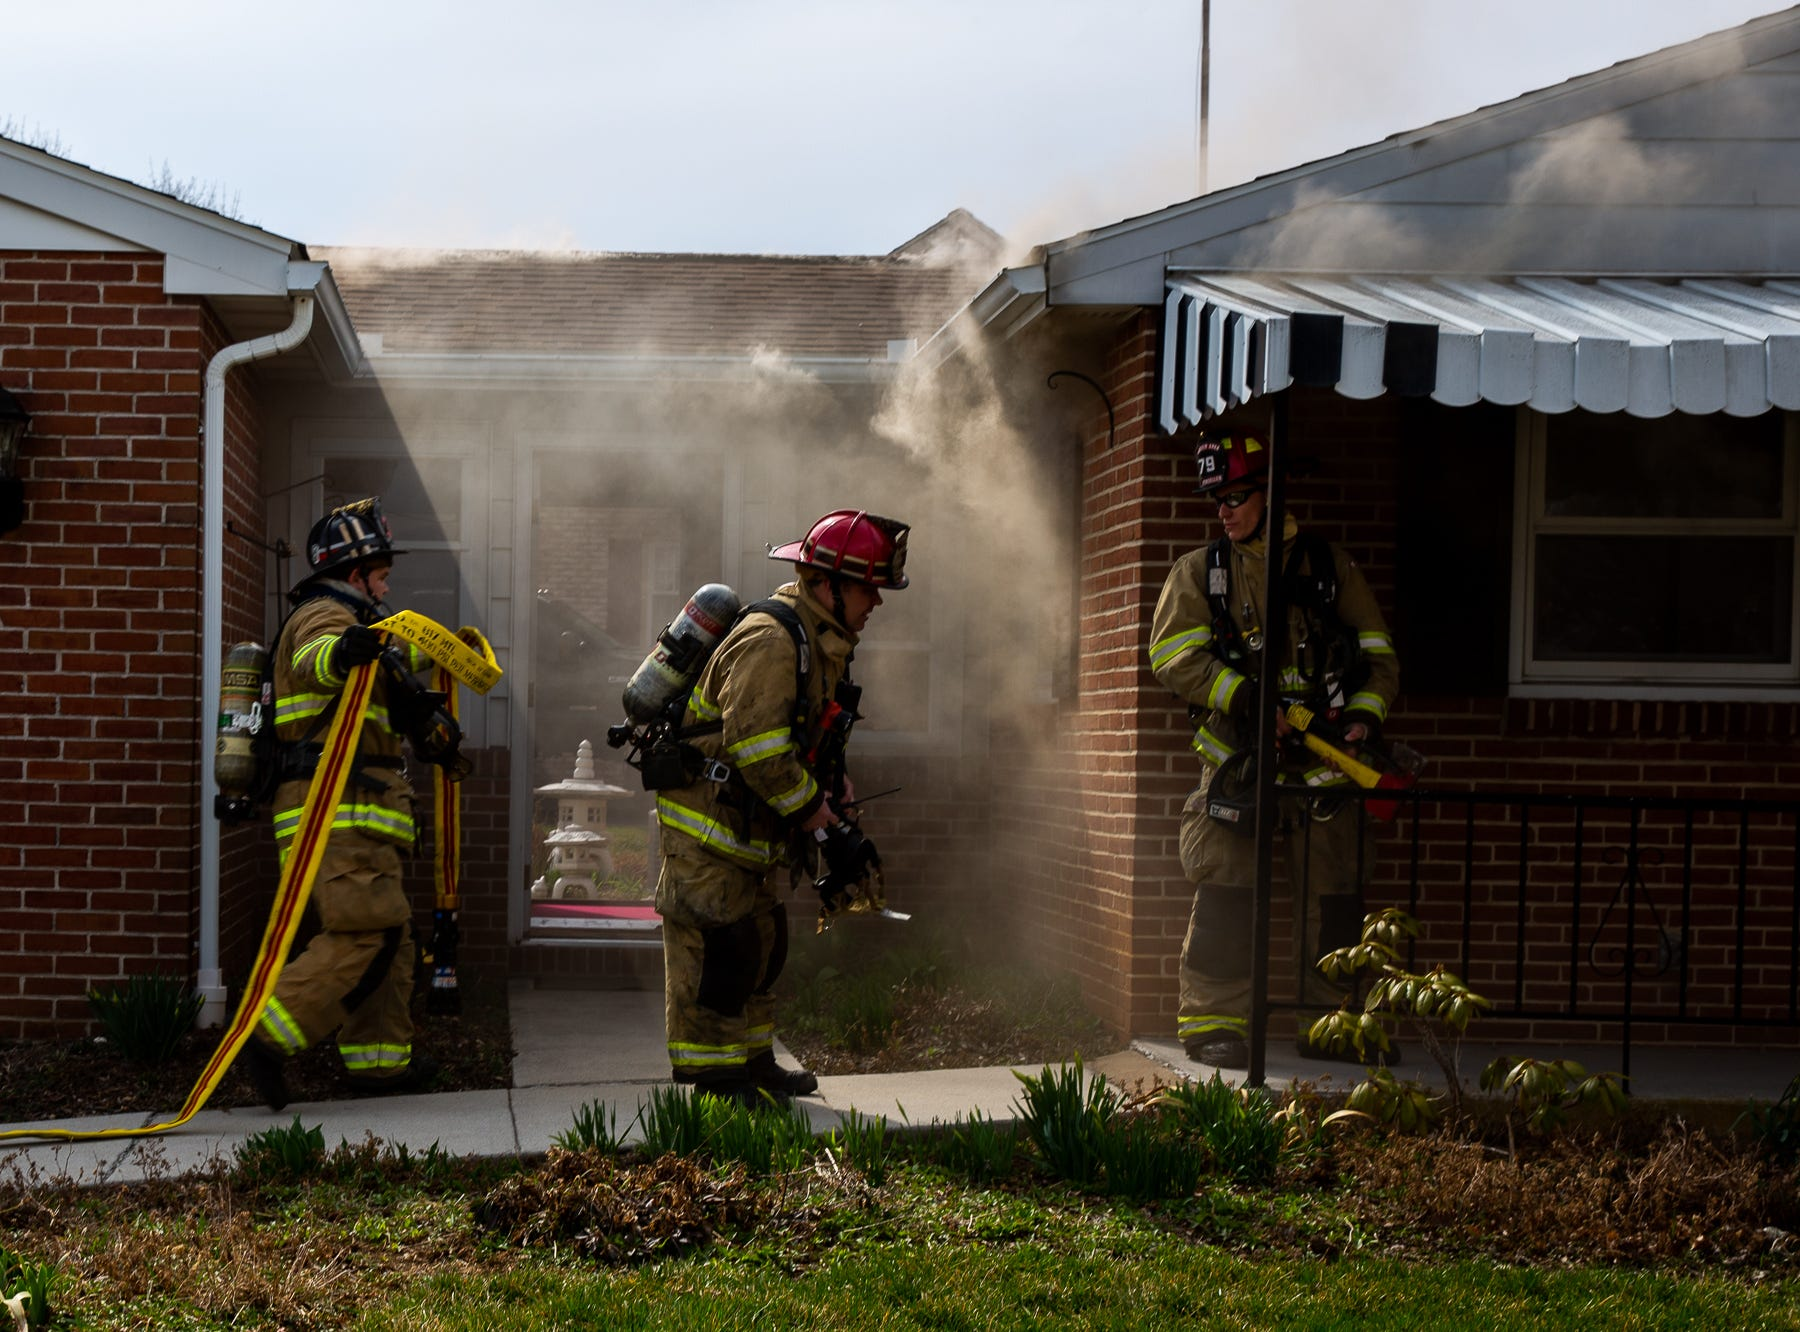 Firefighters gear up to begin the initial interior attack at the scene of a house fire on the 100 block of Mumma Ave., Saturday, March 30, 2019, in Penn Township. No one was injured in the fire, which appears to have been an accidental fire in the kitchen, said Hanover Area Fire & Rescue Chief Tony Clousher.